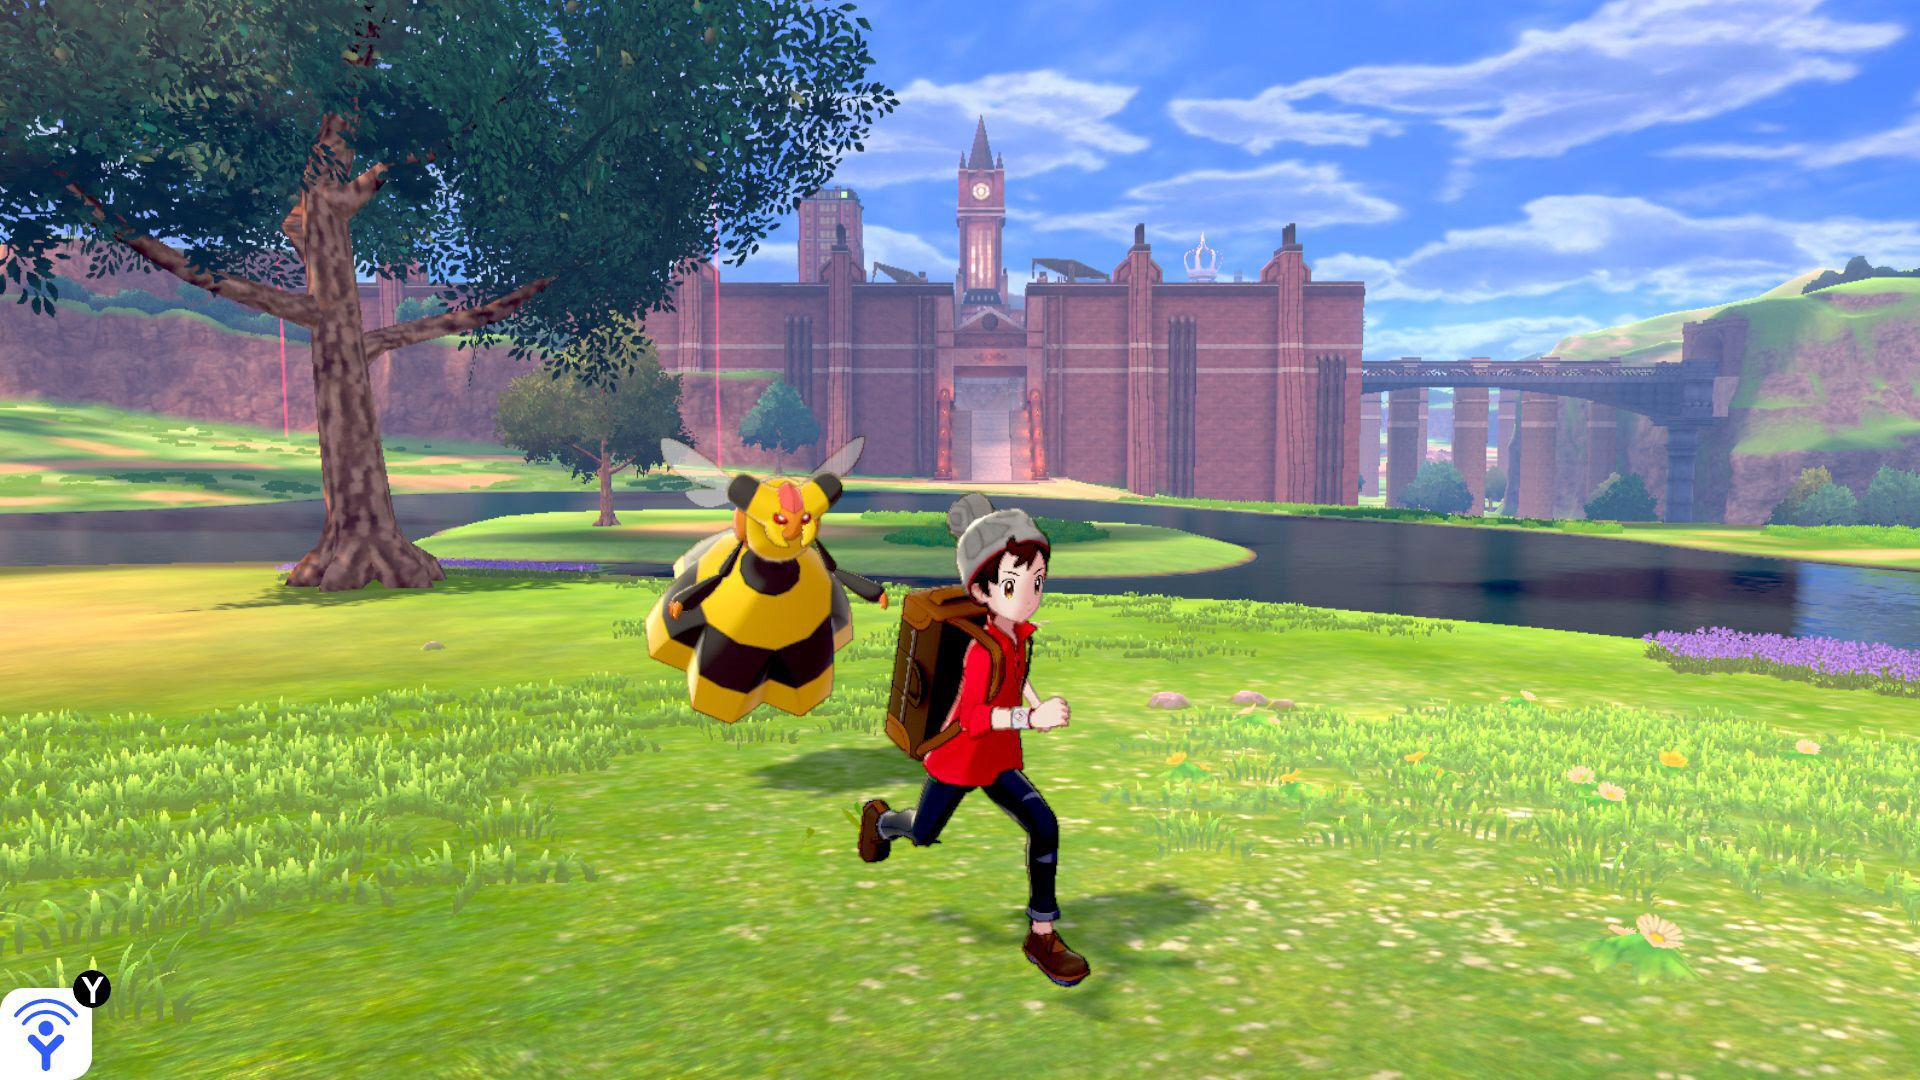 Pokemon Sword And Shield Tier List Most And Weak Powerful Pokemon Powerful Pokemon Pokemon News Games